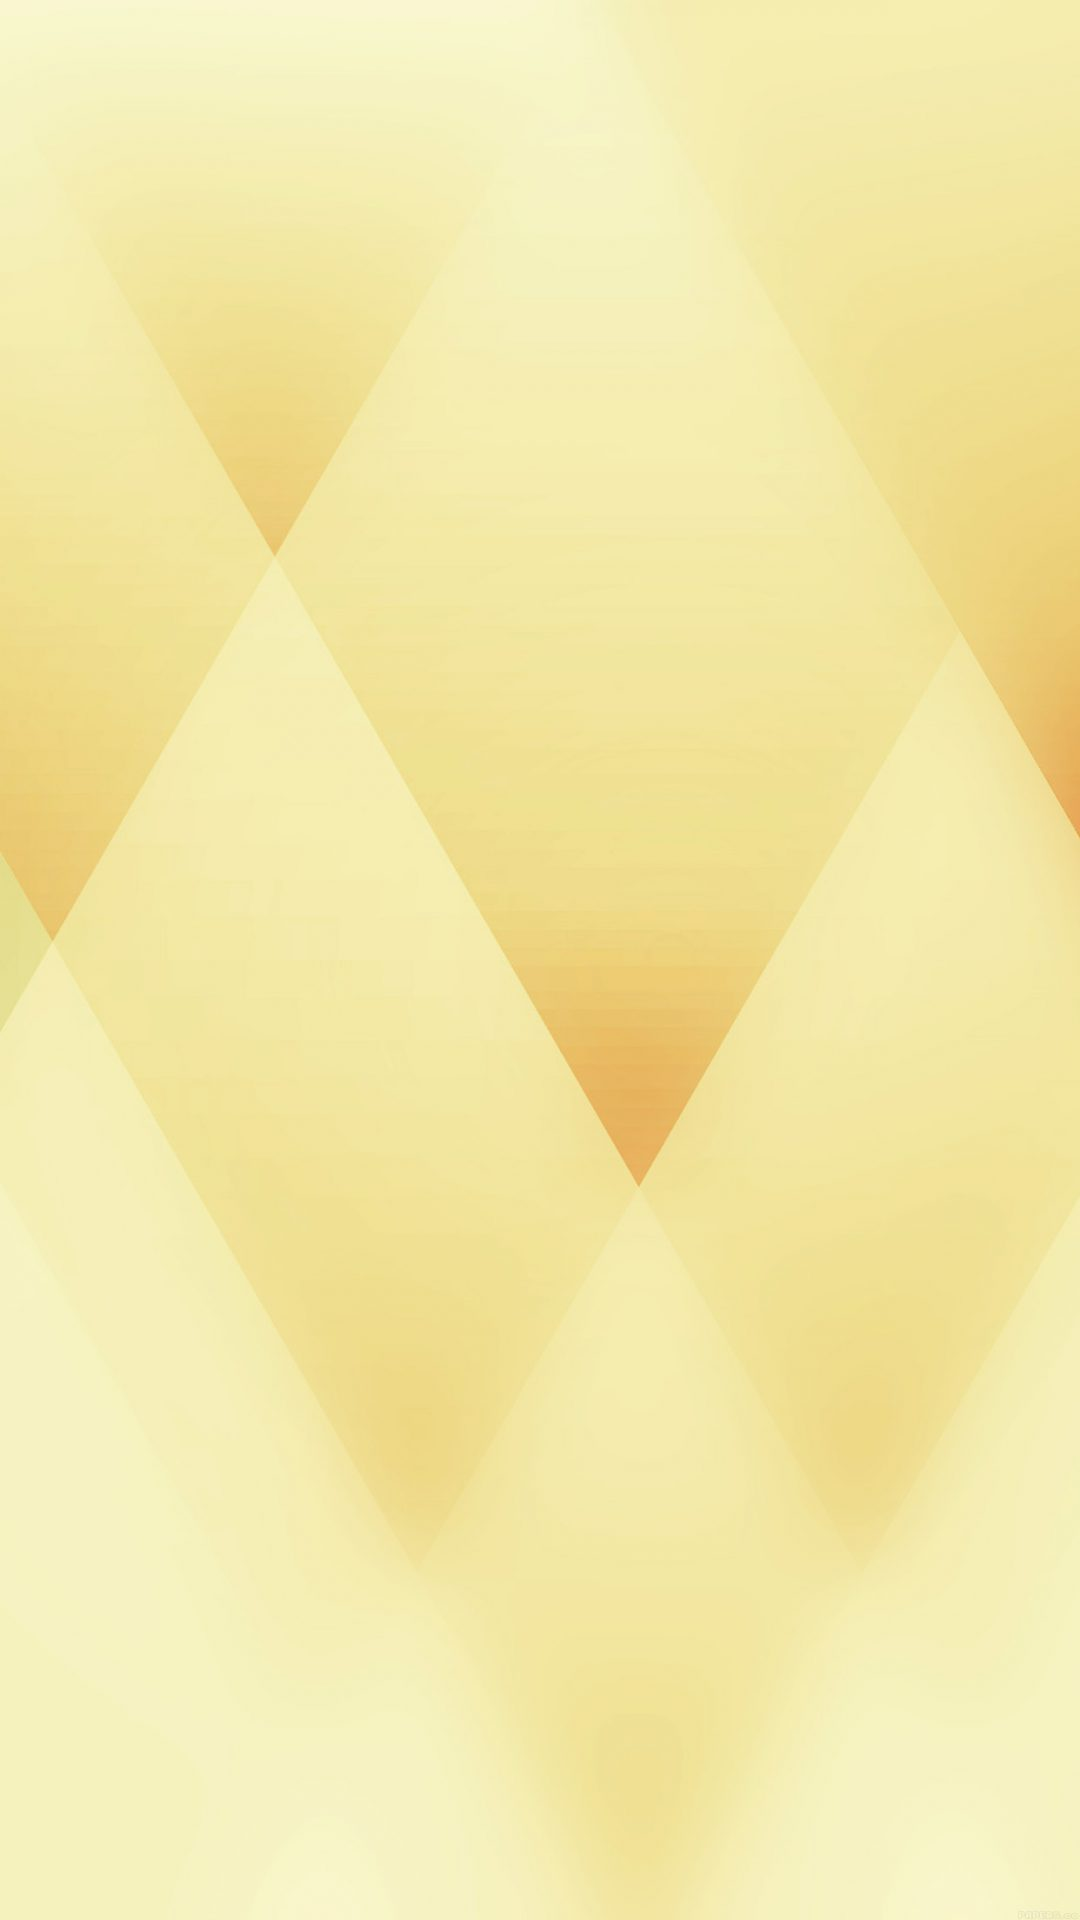 Soft Triangles Abstract Yellow Patterns